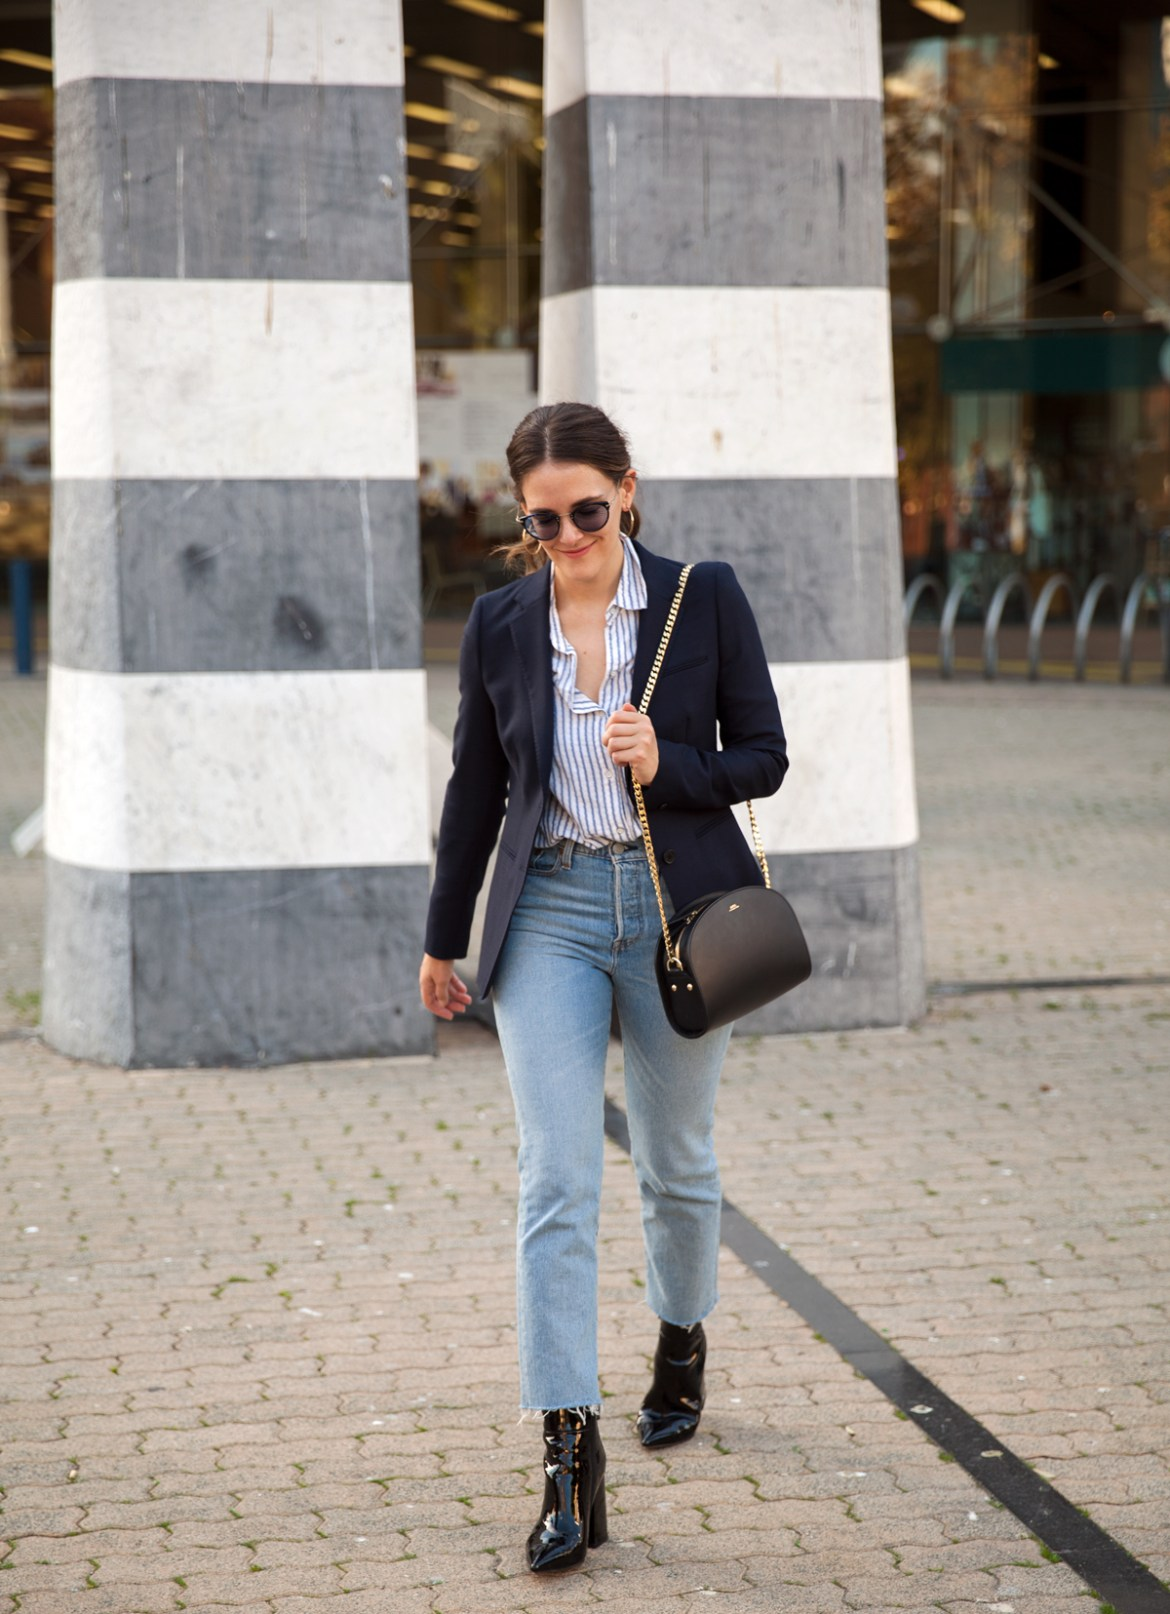 Essilor Transitions Colours Lenses worn with navy blazer, Levi's jeans, Alias Mae patent boots and A.P.C Luna Half Moon Bag by Inspiring Wit blogger Jenelle street style